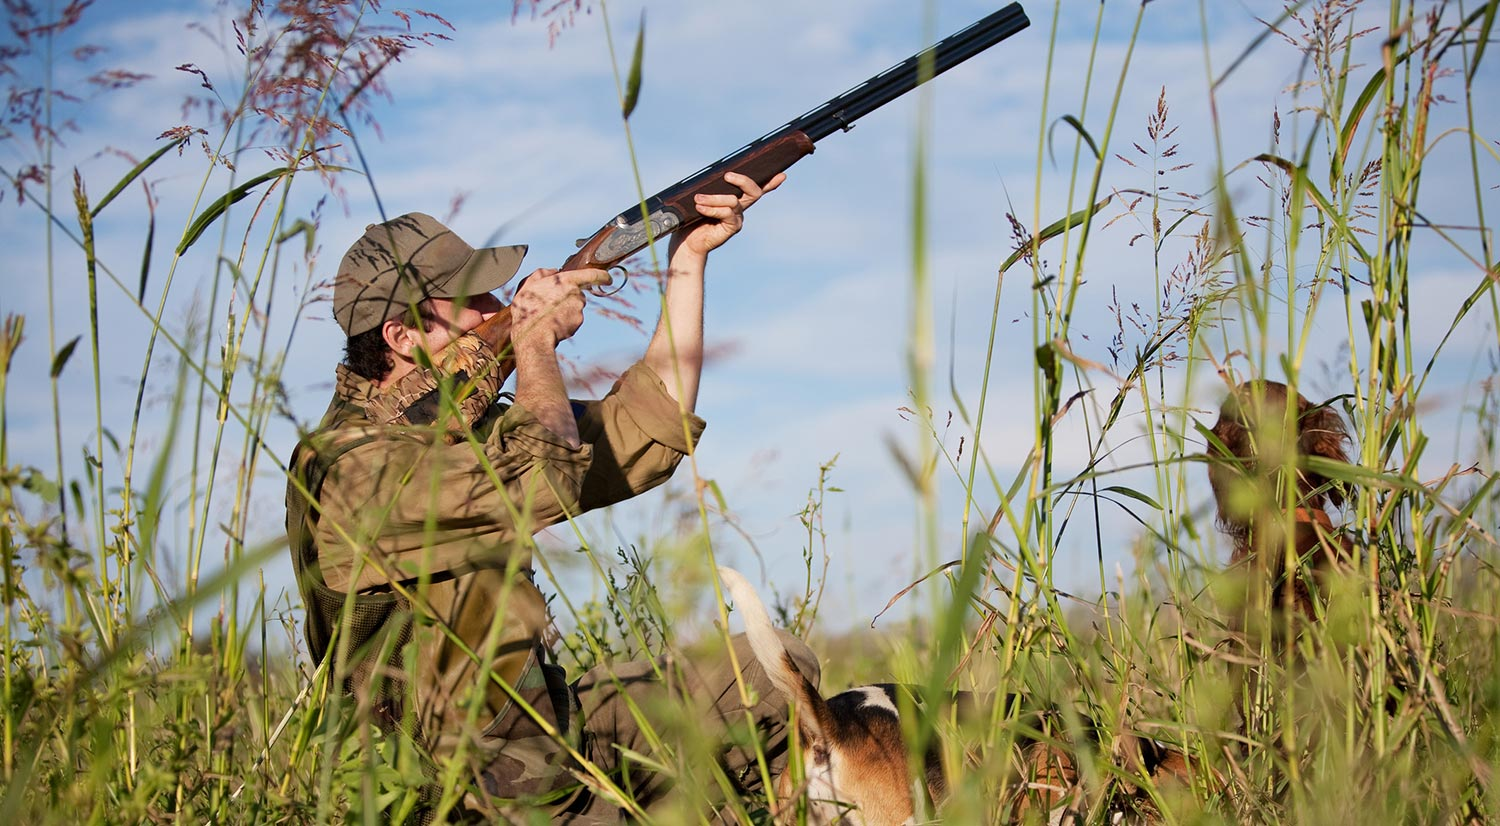 Photo of man and two dogs in grassy area aiming into the sky to hunt